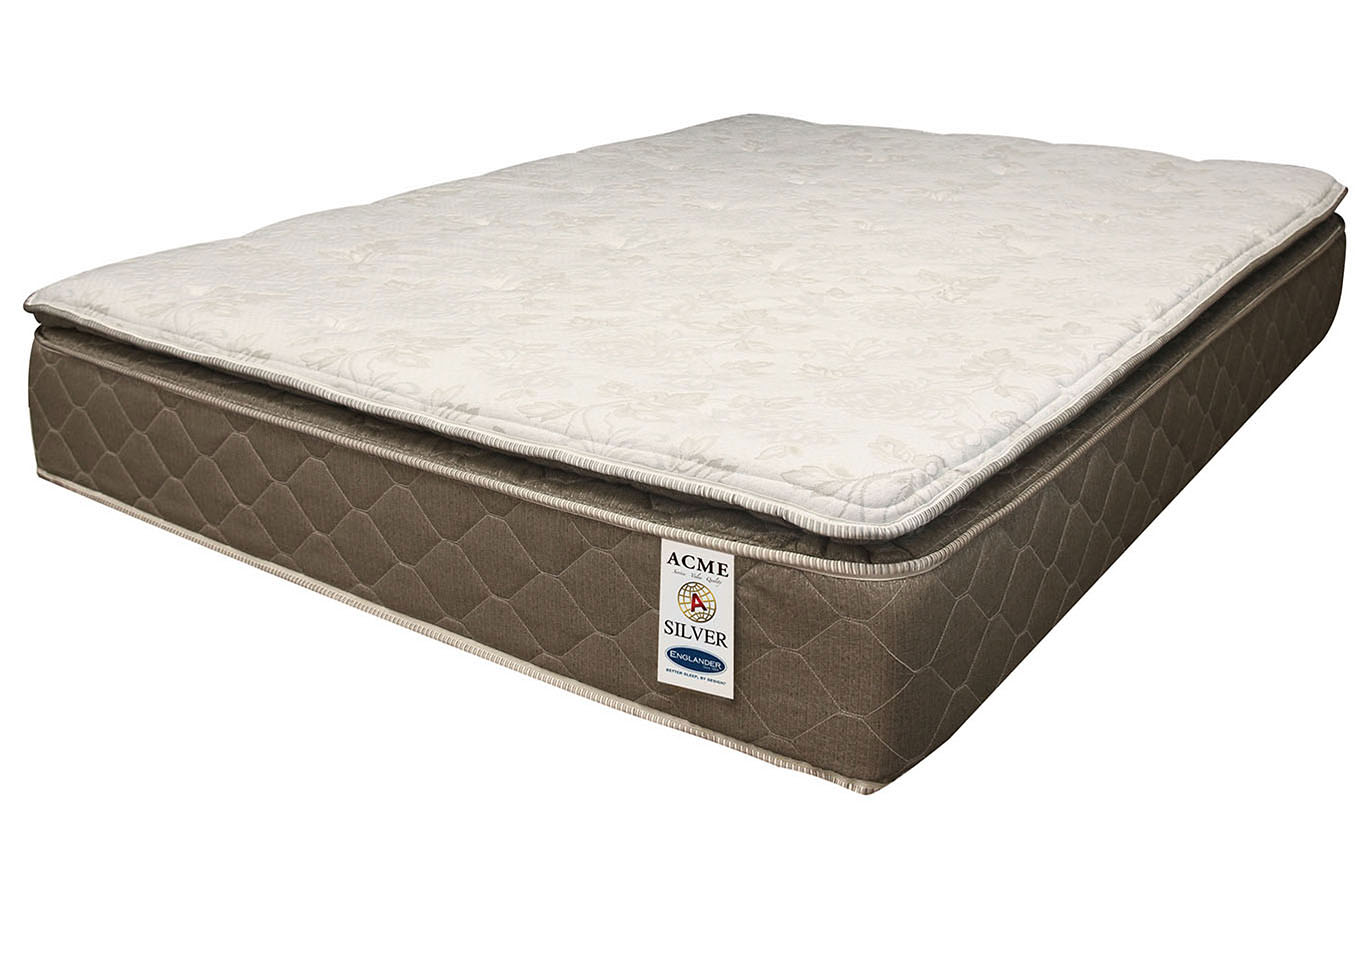 "Englander Silver 12"" Pillow Top Twin Mattress,Acme"